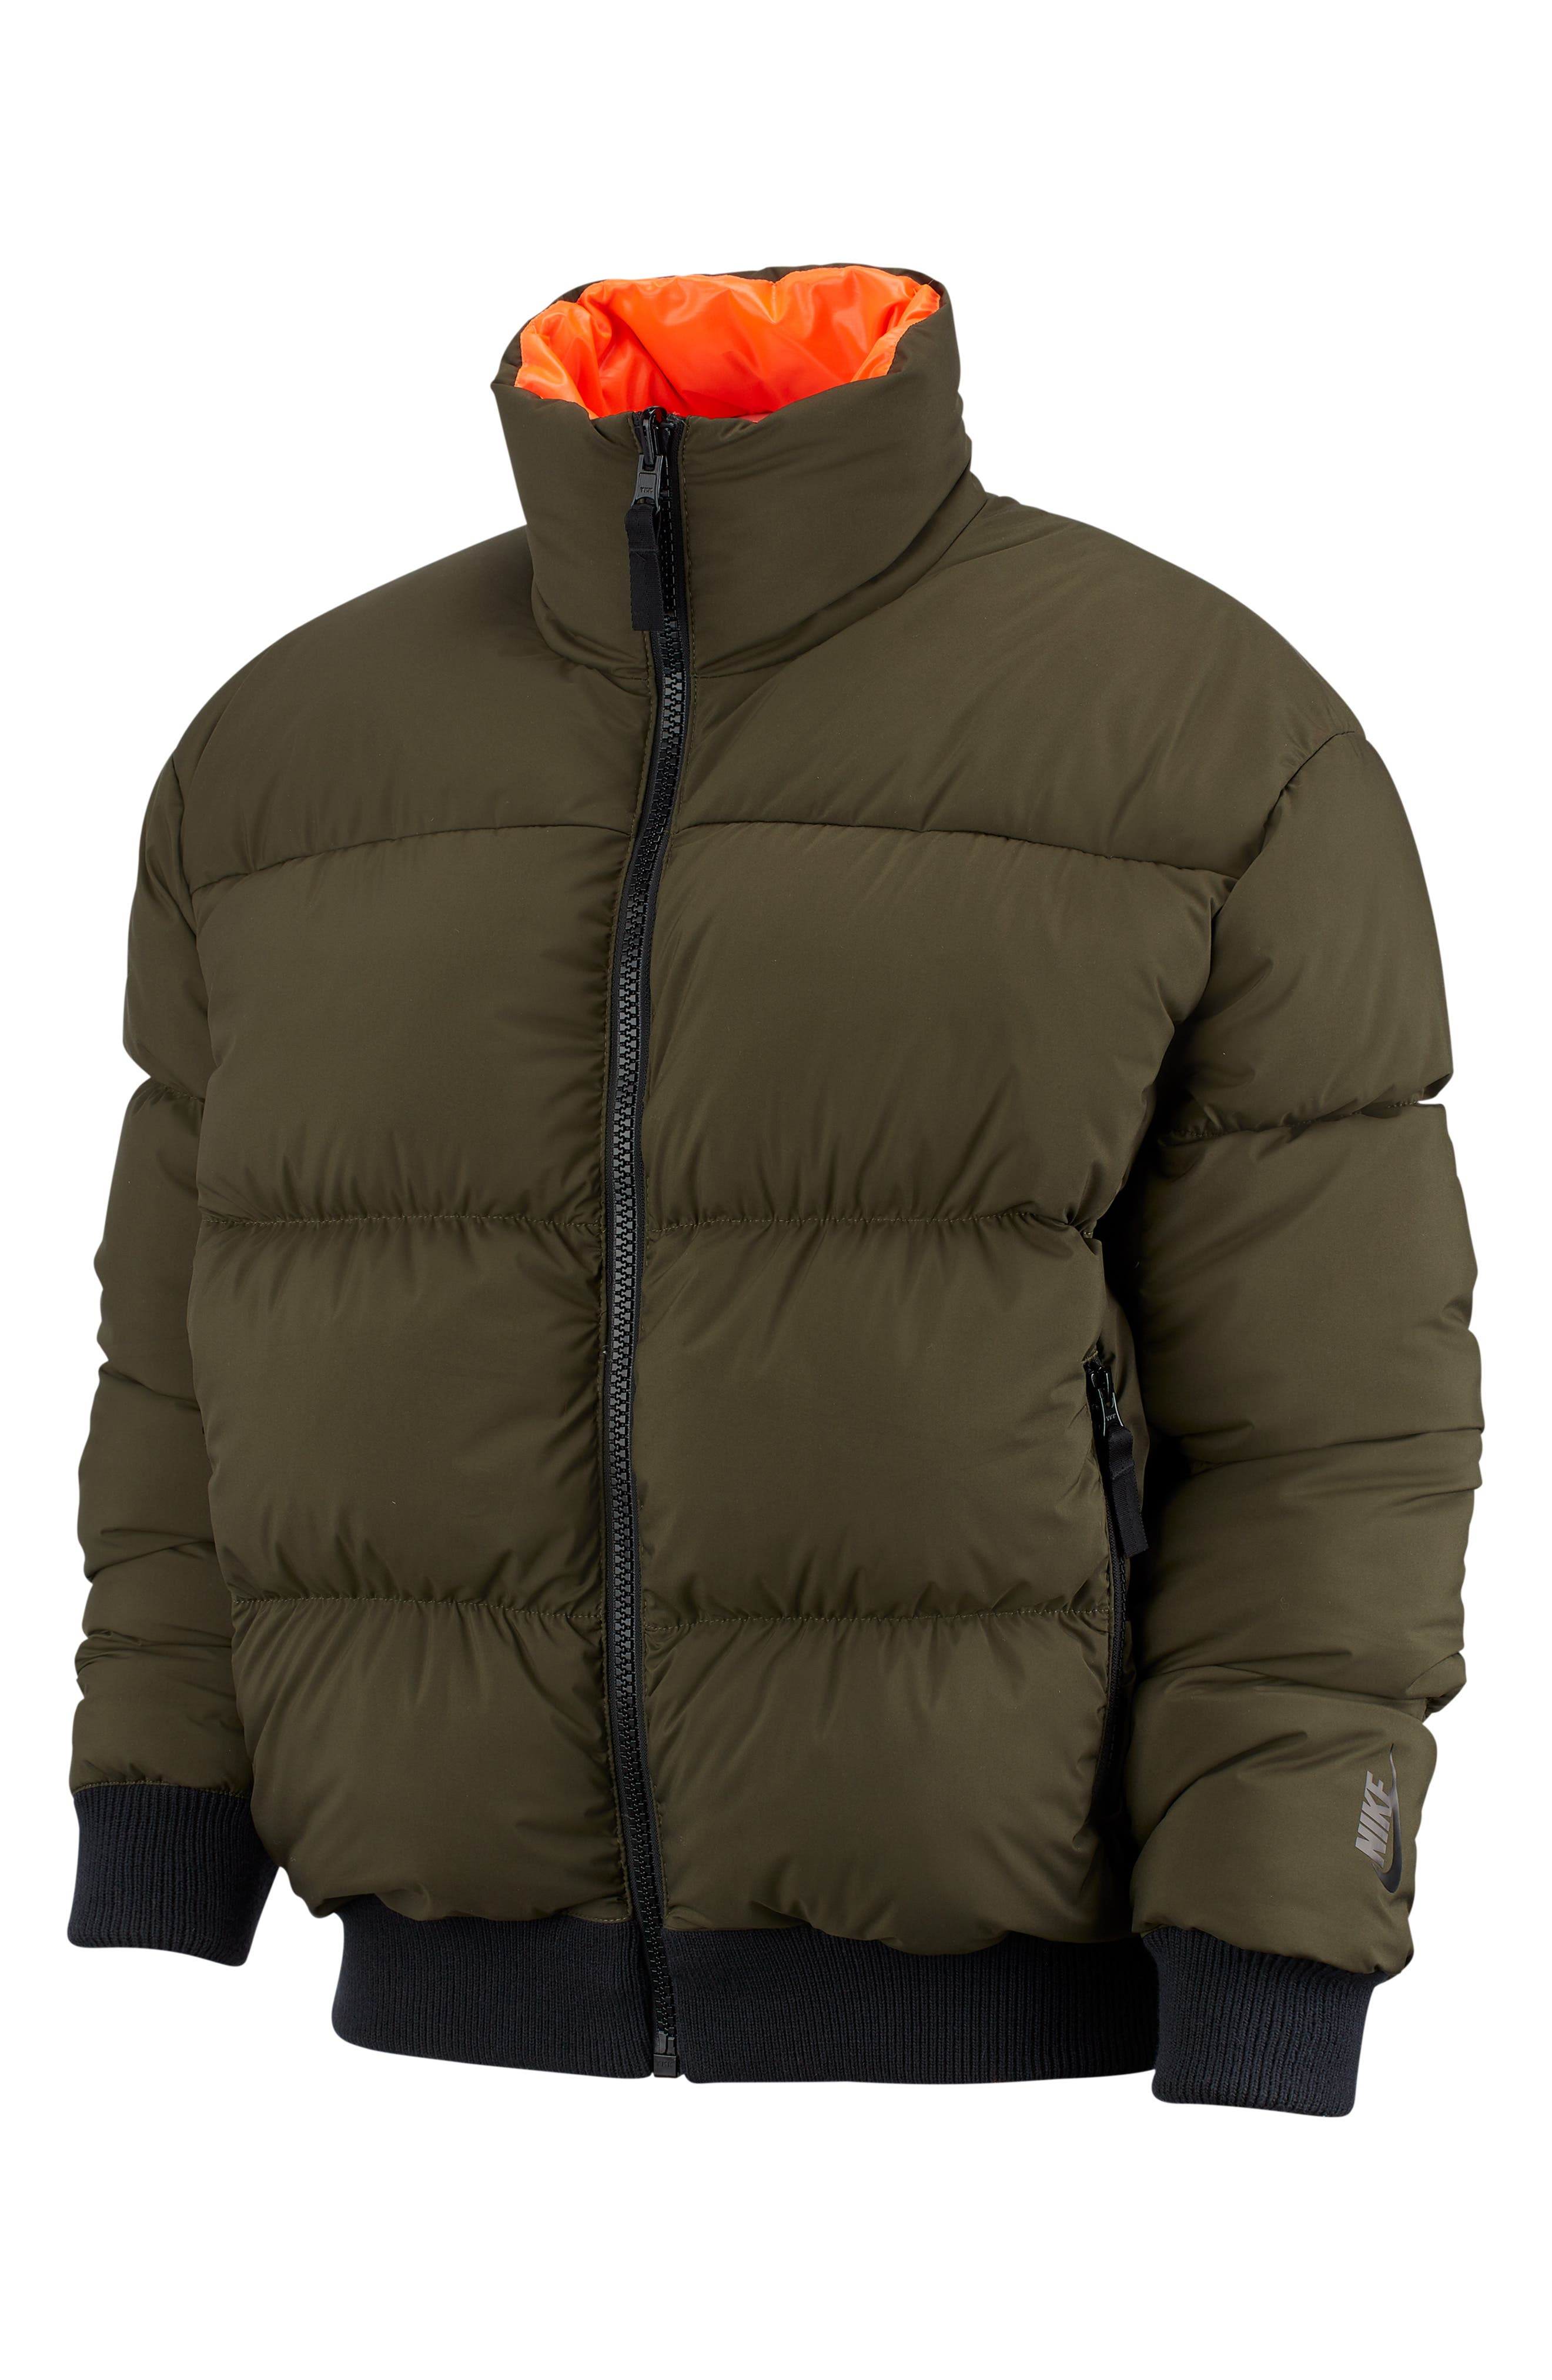 Nike Nrg Reversible Down Fill Puffer Jacket, Green